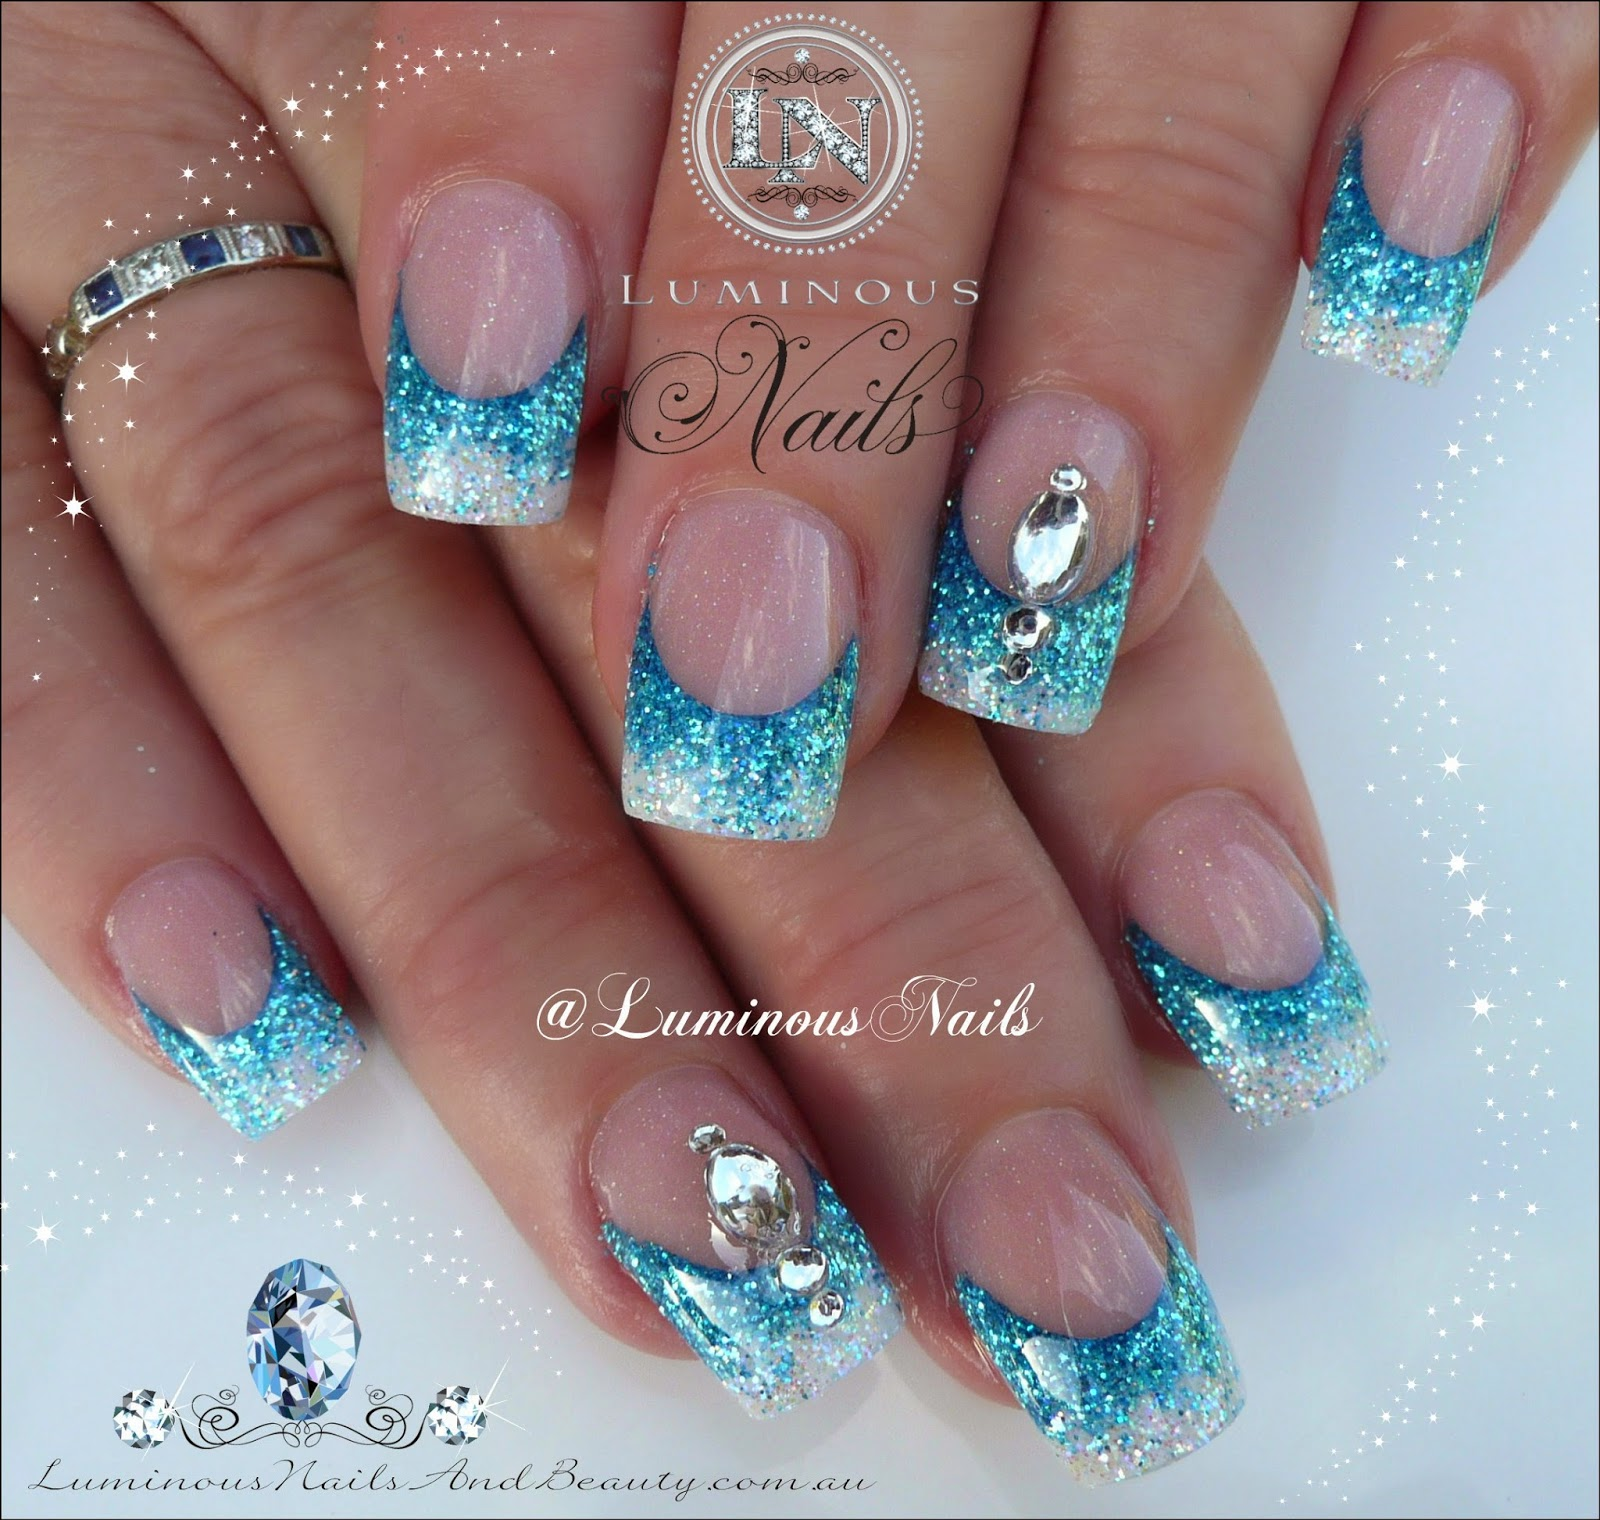 Luminous+Nails+&+Beauty,+Gold+Coast+QLD.+Beach+Ocean+Nails